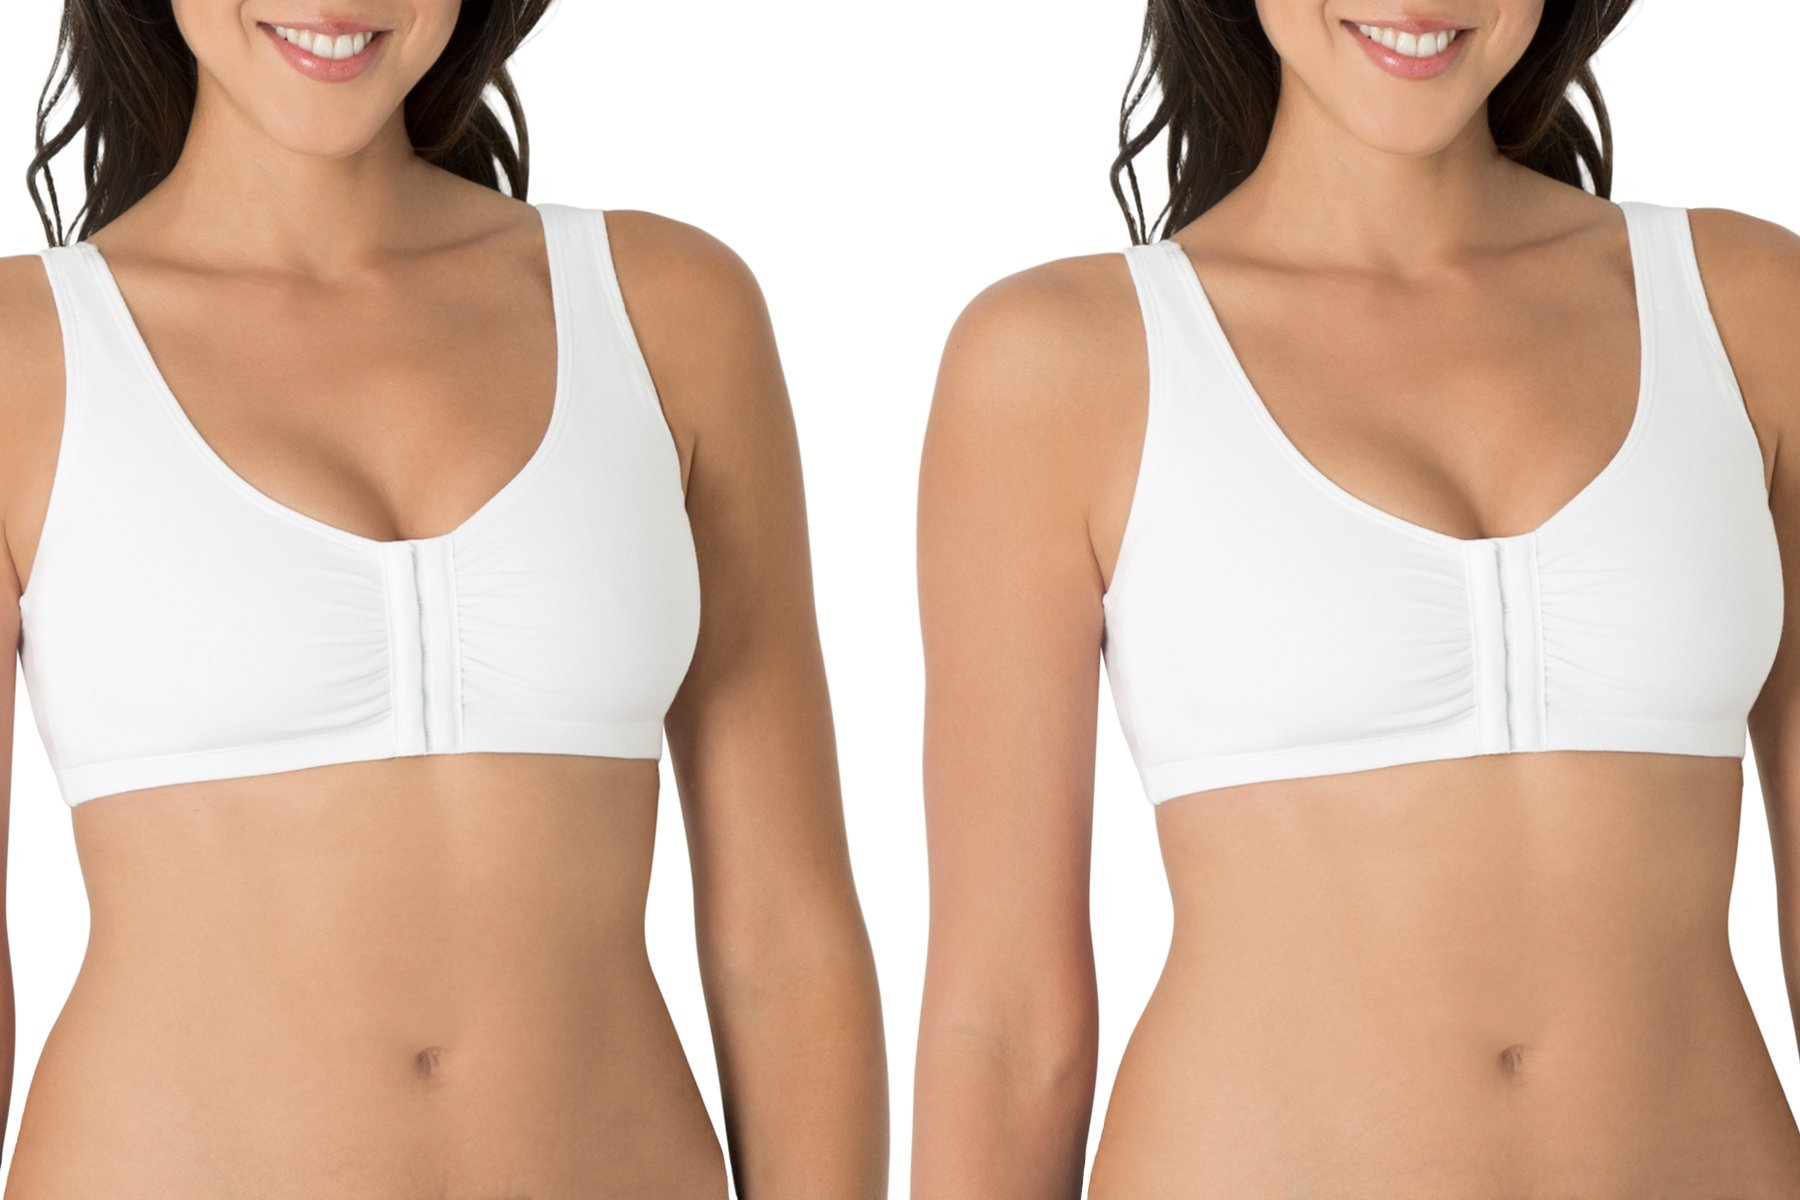 Fruit of the Loom Women's Plus-Size Sport Bra, White, Size 36 by Fruit of the Loom